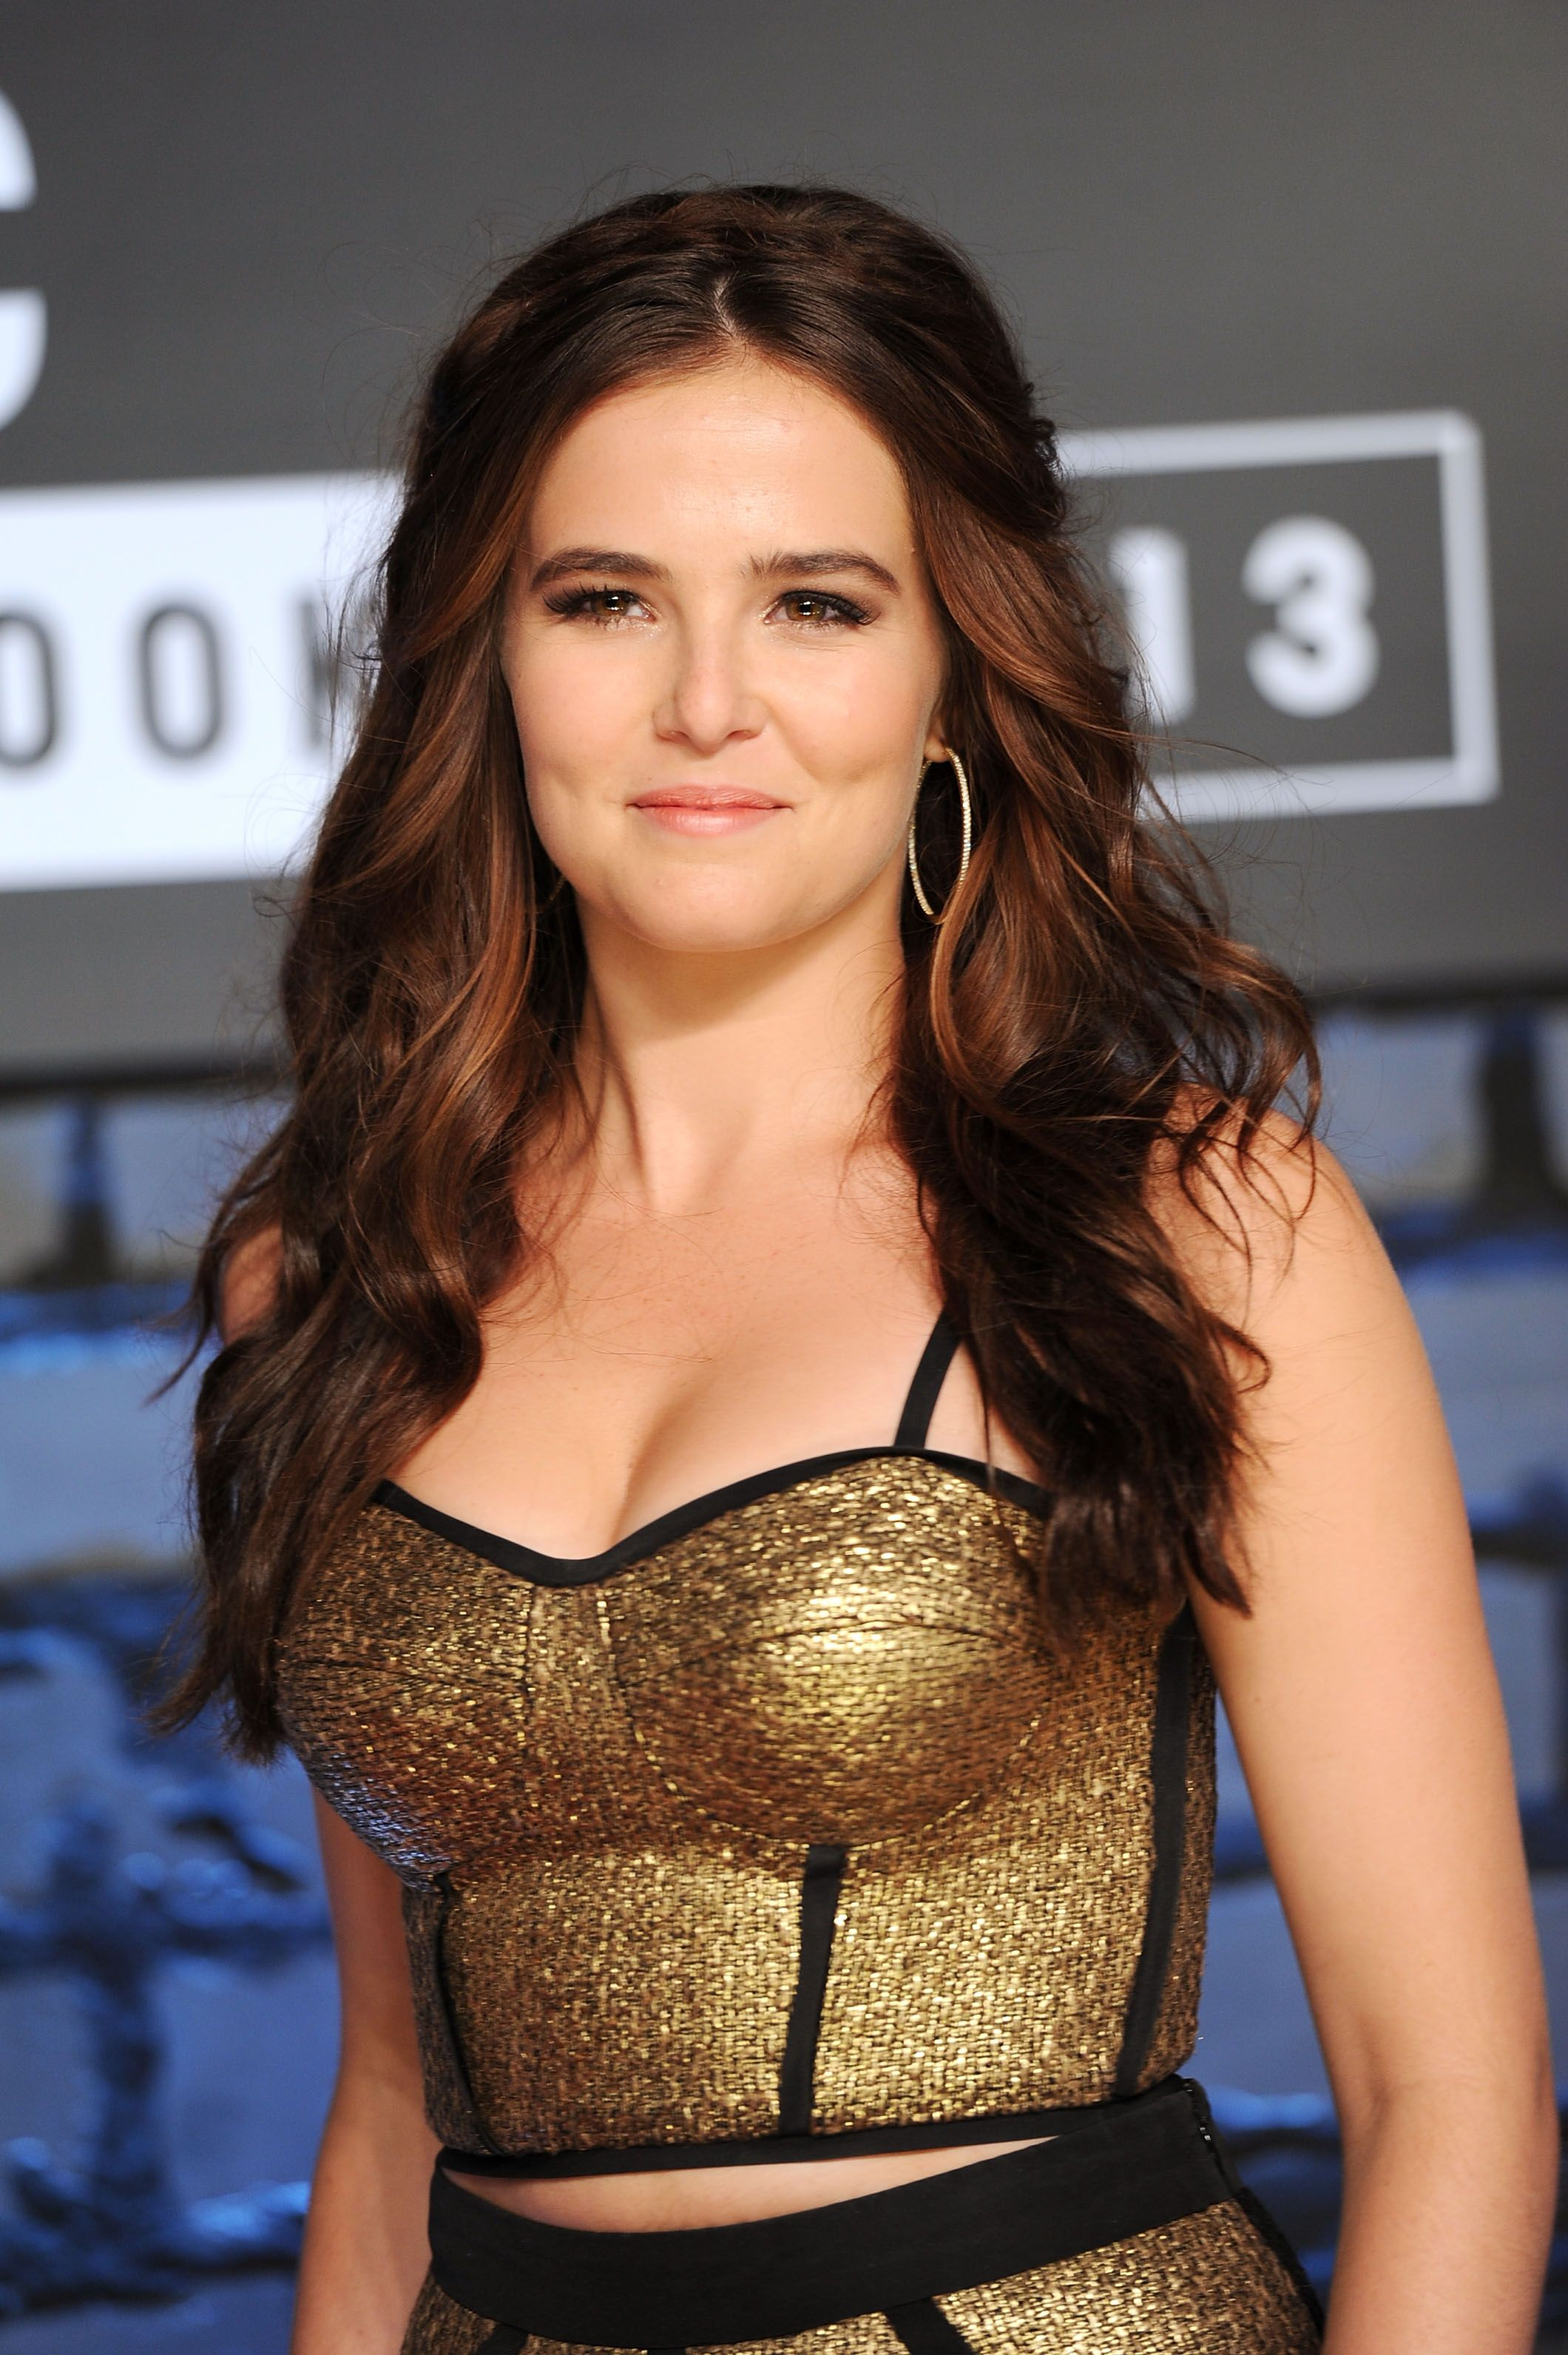 Video Zoey Deutch naked (68 photos), Sexy, Leaked, Instagram, swimsuit 2006